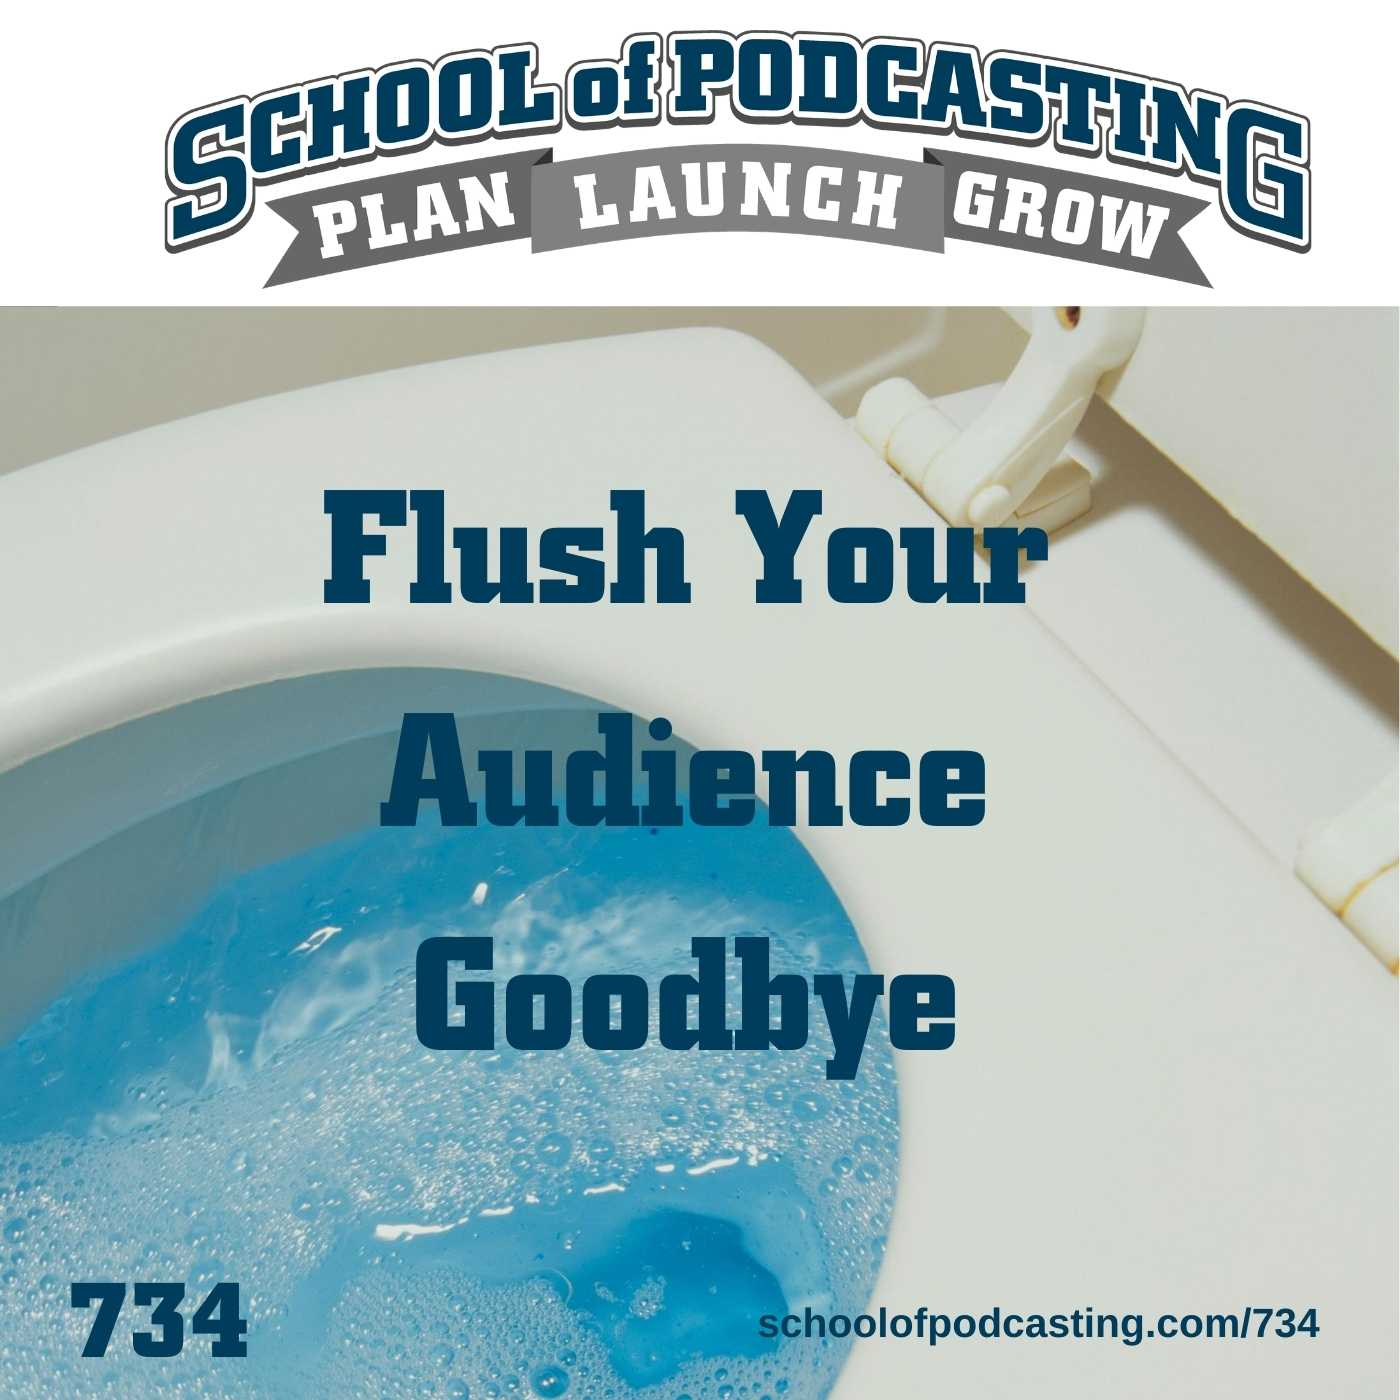 Avoid Flushing Your Audience Goodbye